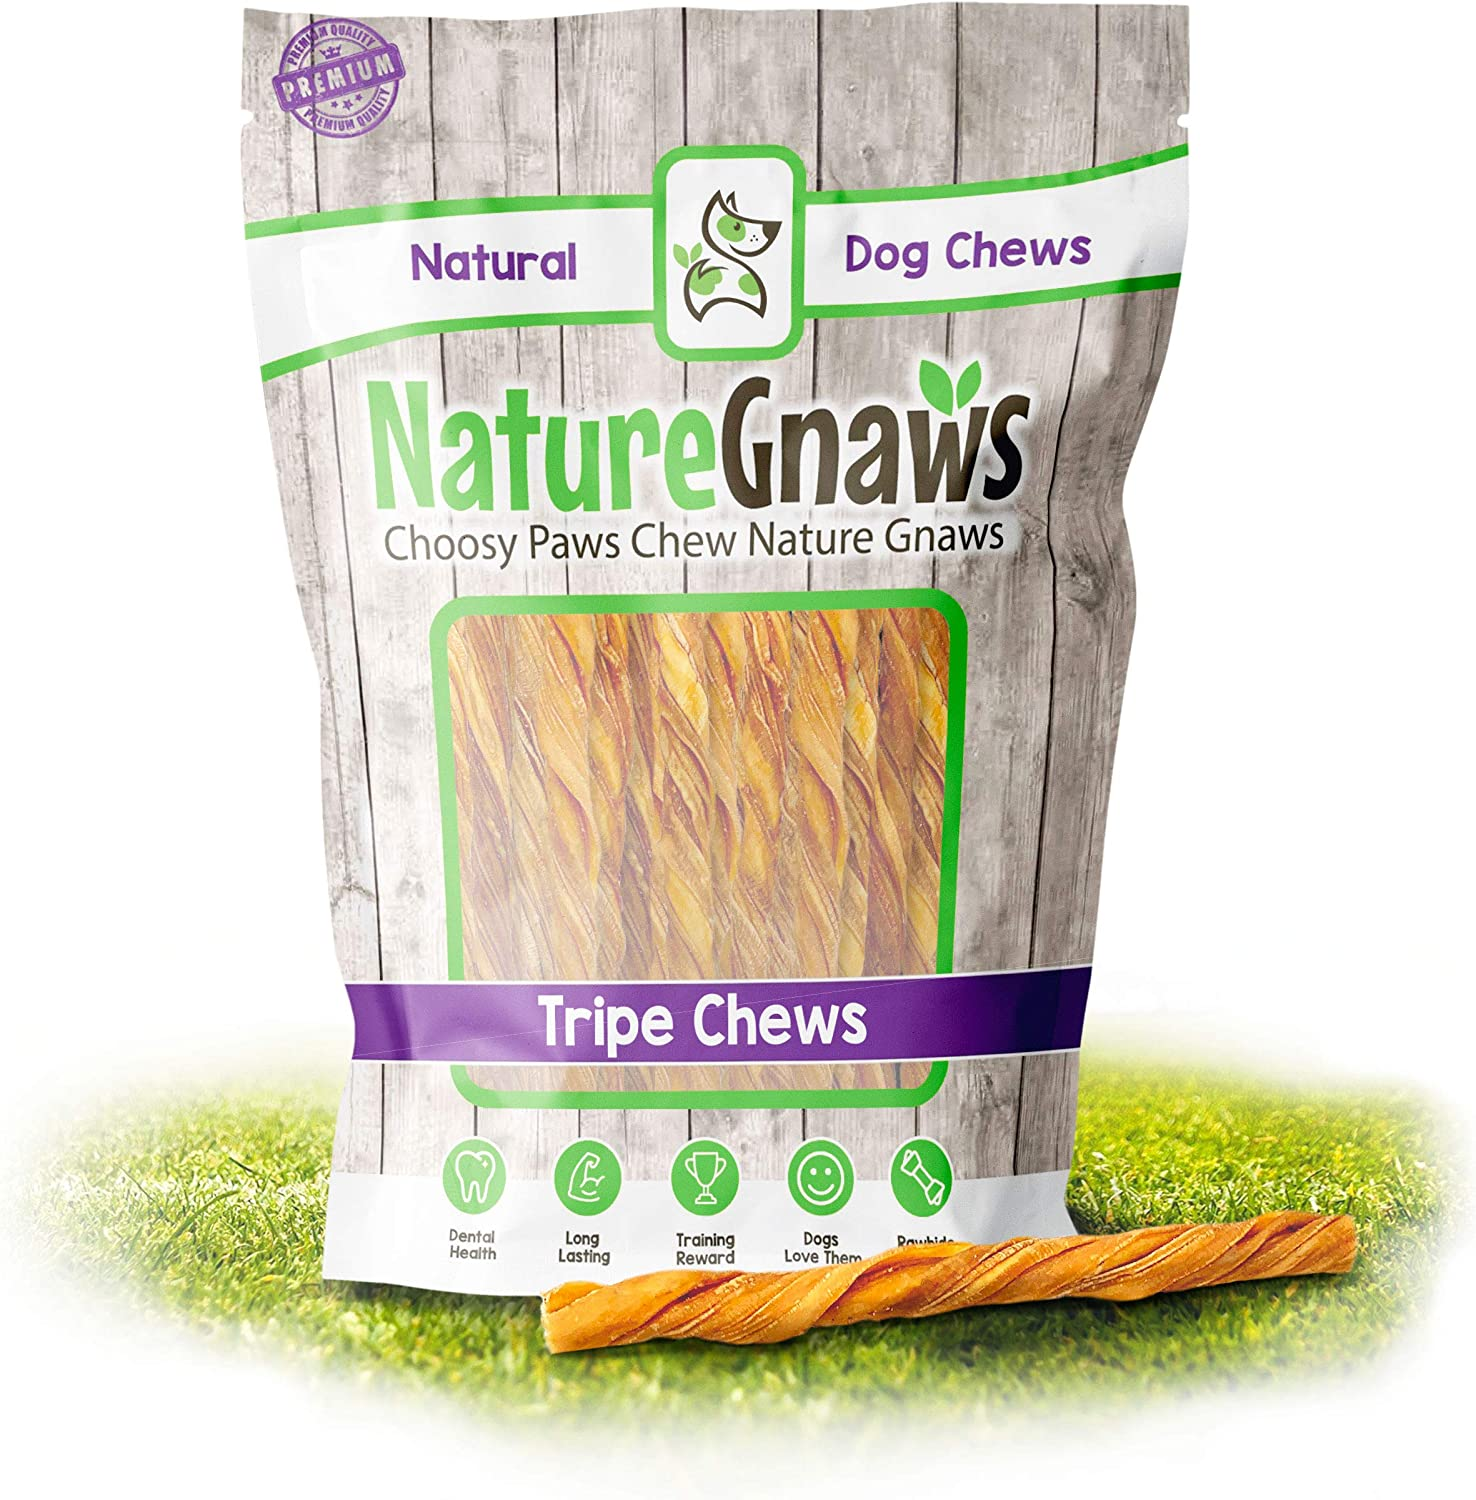 Nature Gnaws Extra Thin Tripe Twists for Small Dogs - Premium Natural Beef Sticks - Single Ingredient Crunchy Dog Chew Treats - Rawhide Free - 4-5 Inch